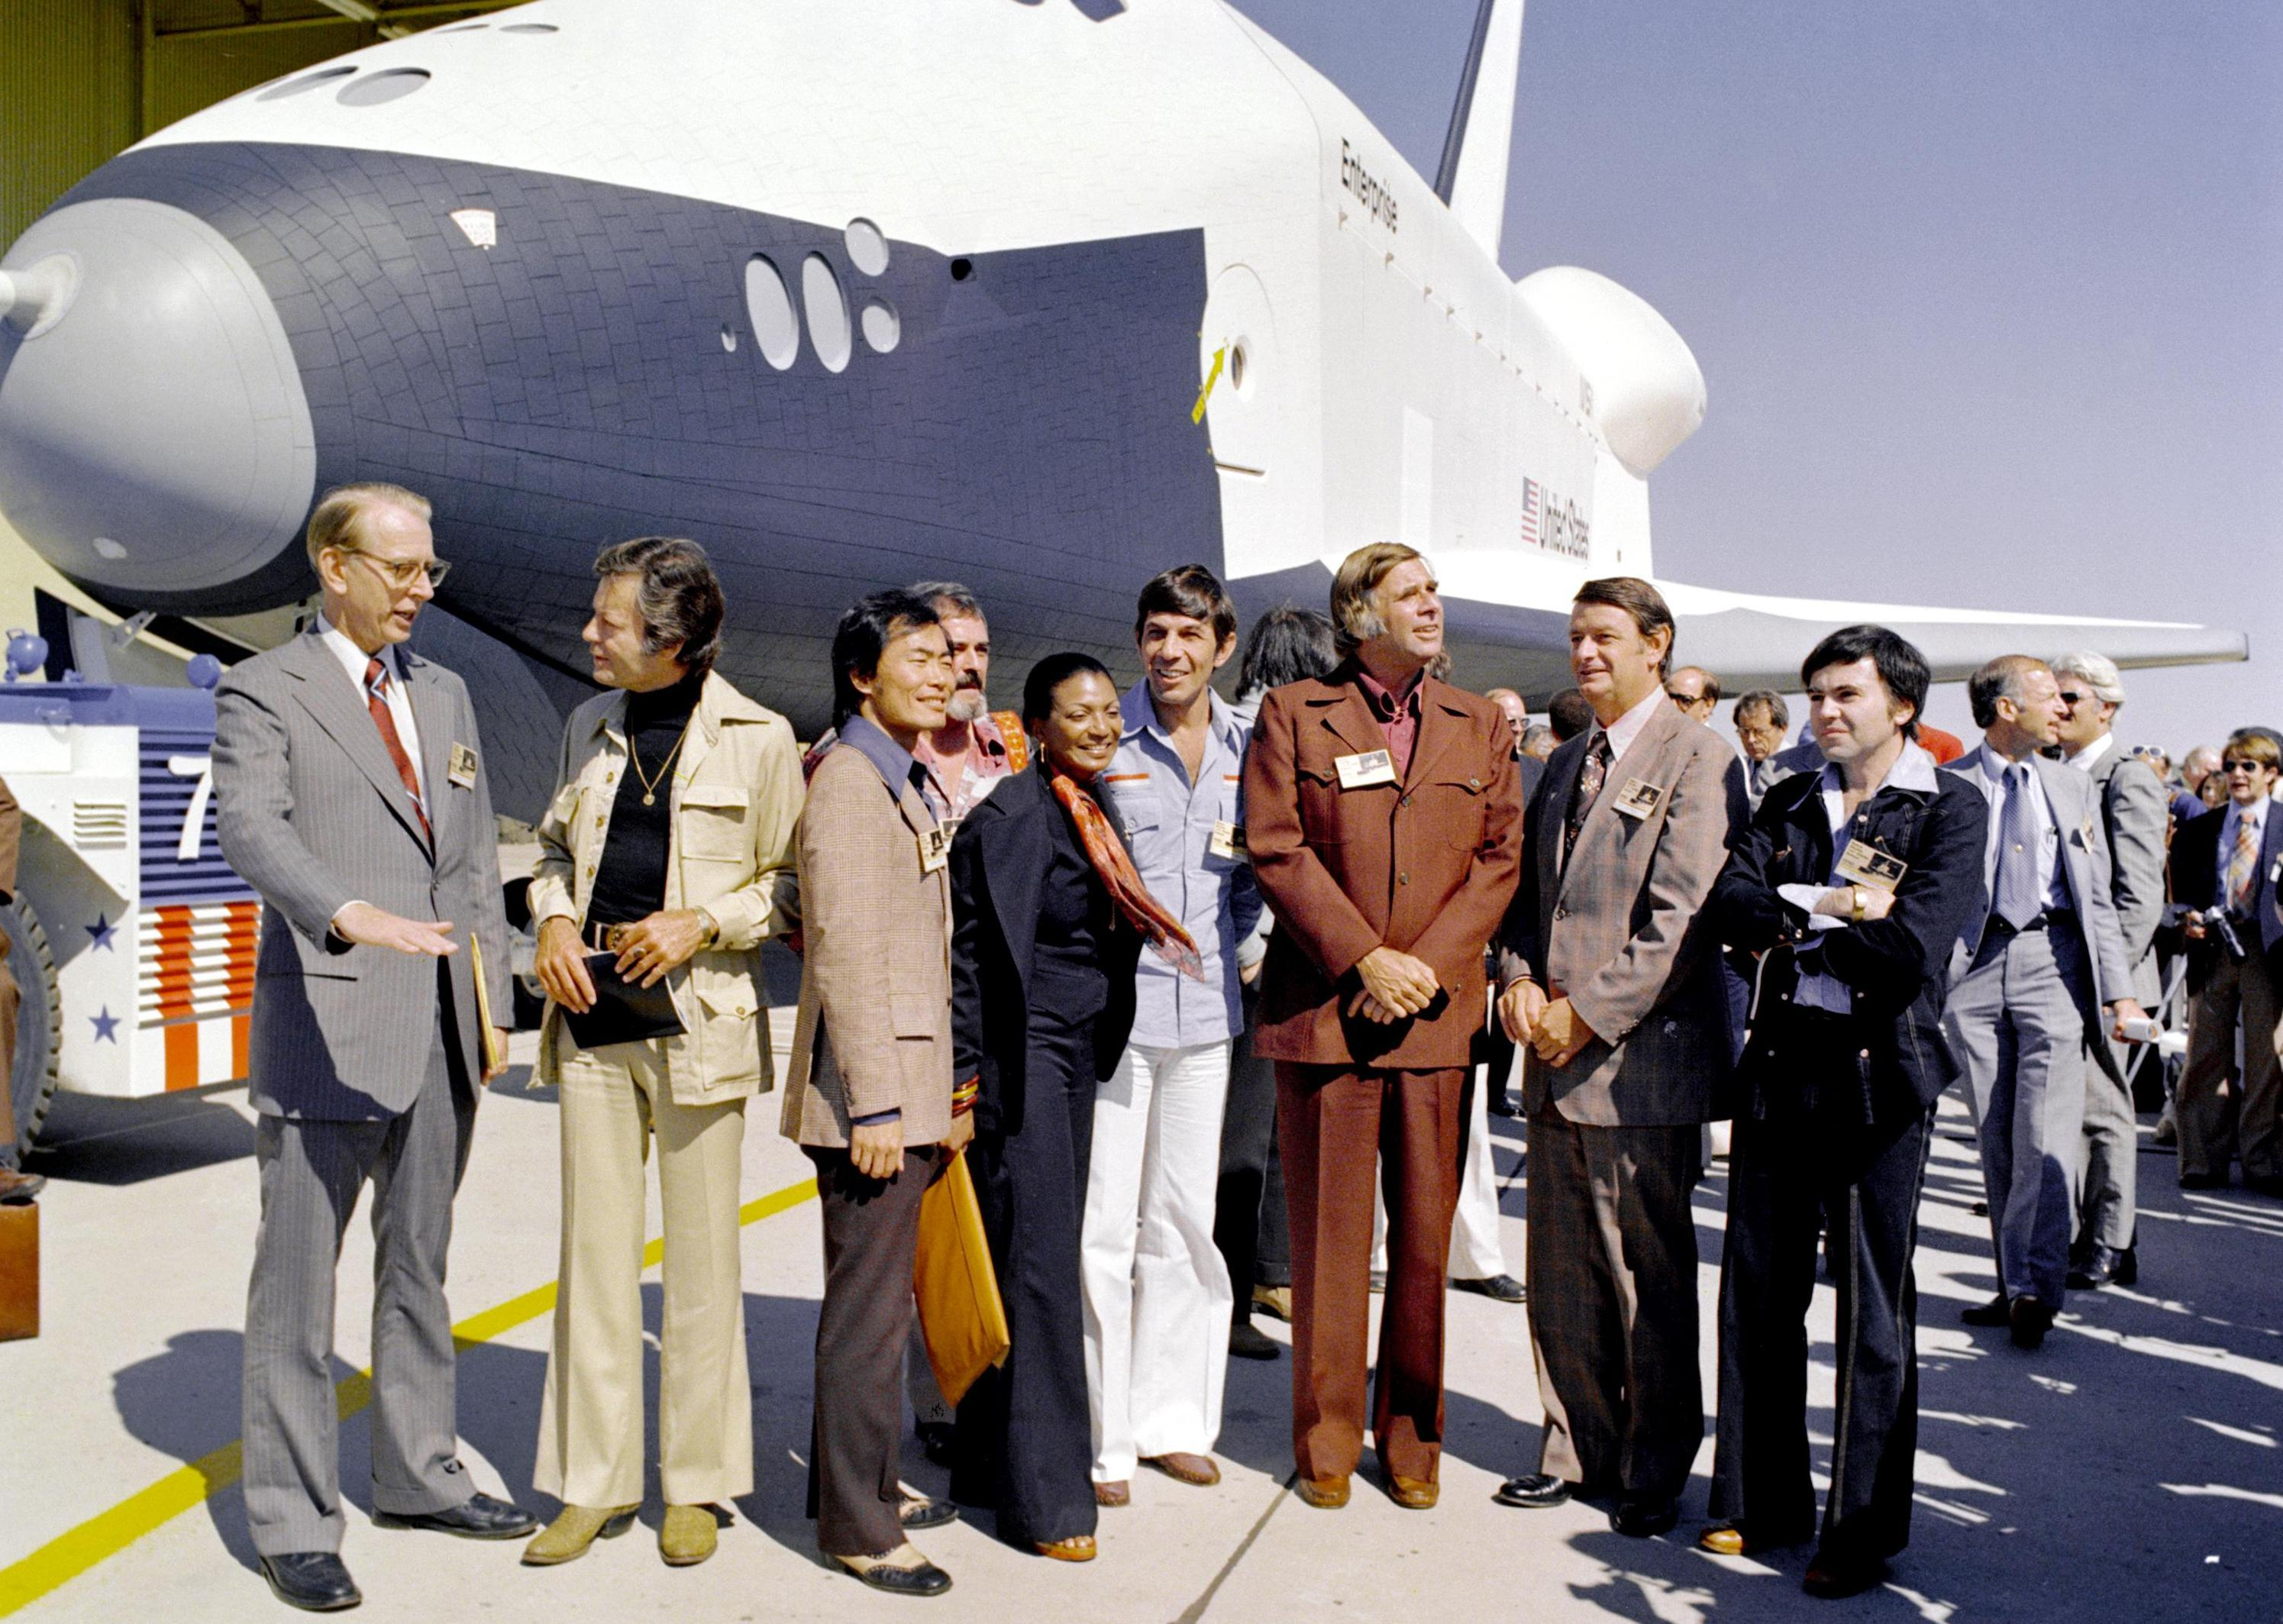 Members of the original Star Trek cast stand in front of the space shuttle Enterprise in 1976. Left to right: James D. Fletcher, NASA administrator; DeForest Kelley (Dr. McCoy); George Takei (Mr. Sulu); Nichelle Nichols (Lt. Uhura); Leonard Nimoy (Mr. Spock); Gene Roddenberry (Star Trek's creator); an unidentified man; and Walter Koenig (Ensign Pavel Chekov). The bearded fellow behind Takei and Nichols appears to be James Doohan (Mr. Scott).